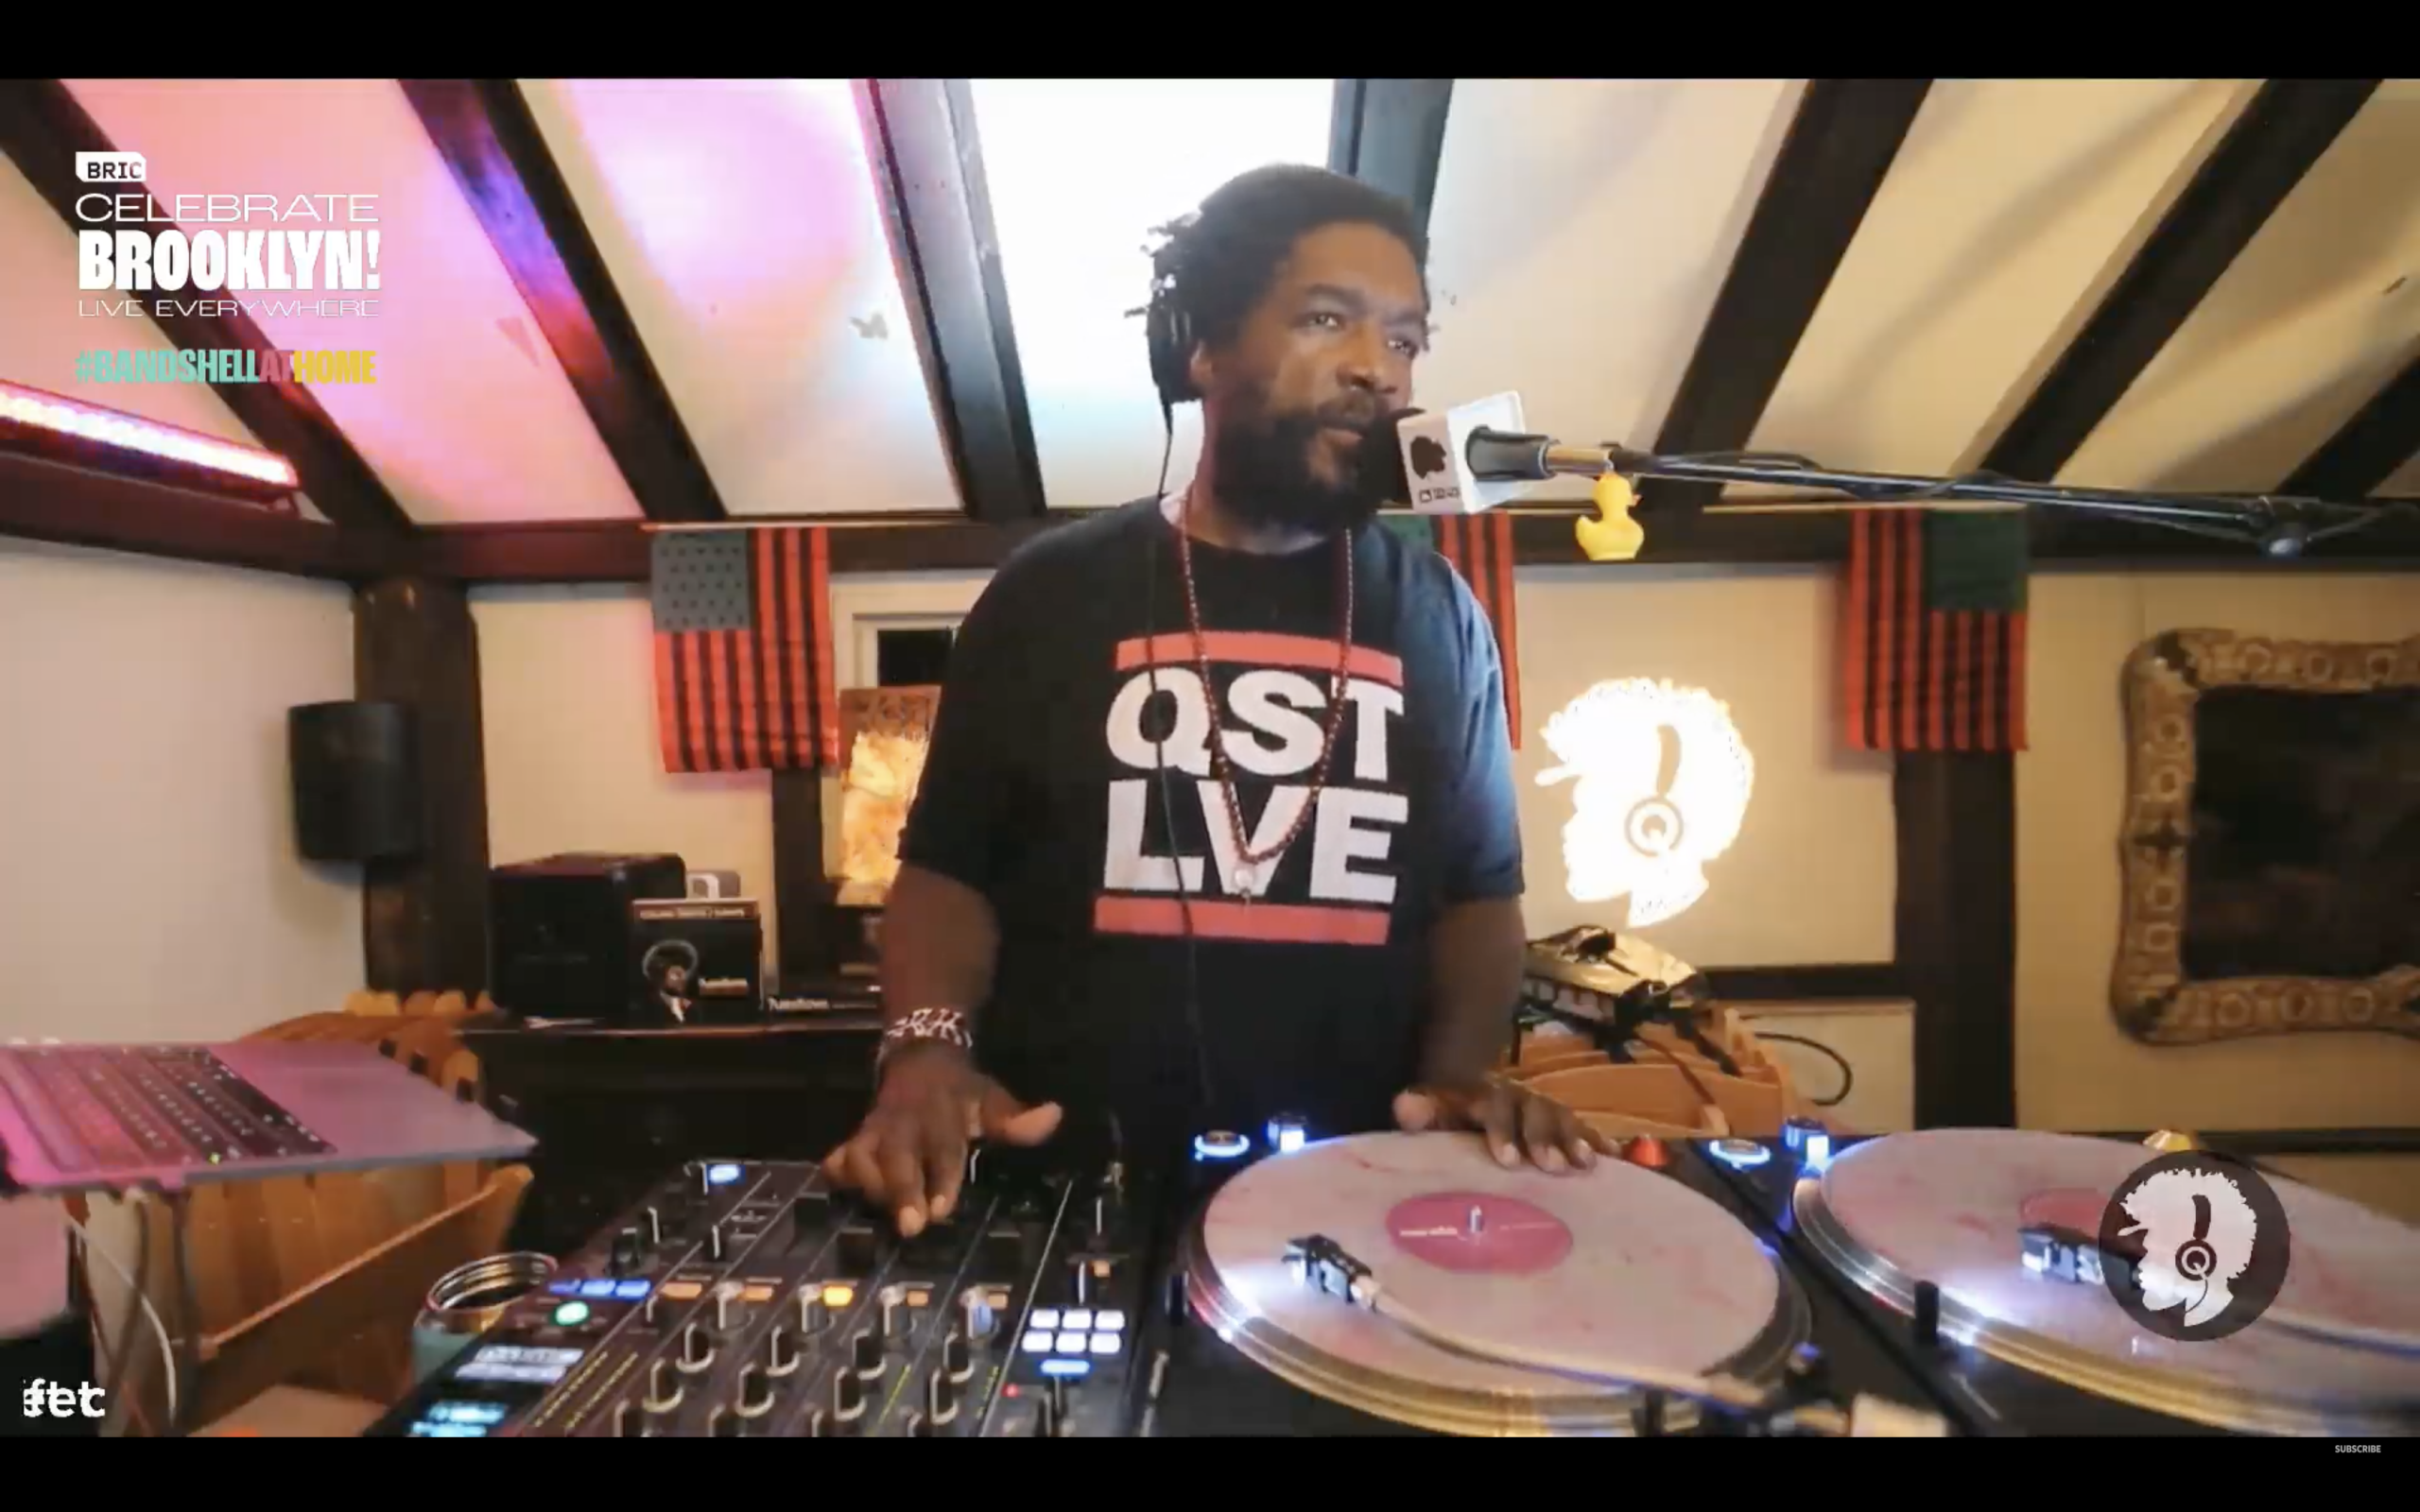 Questlove performing from home at BRIC Celebrate Brooklyn